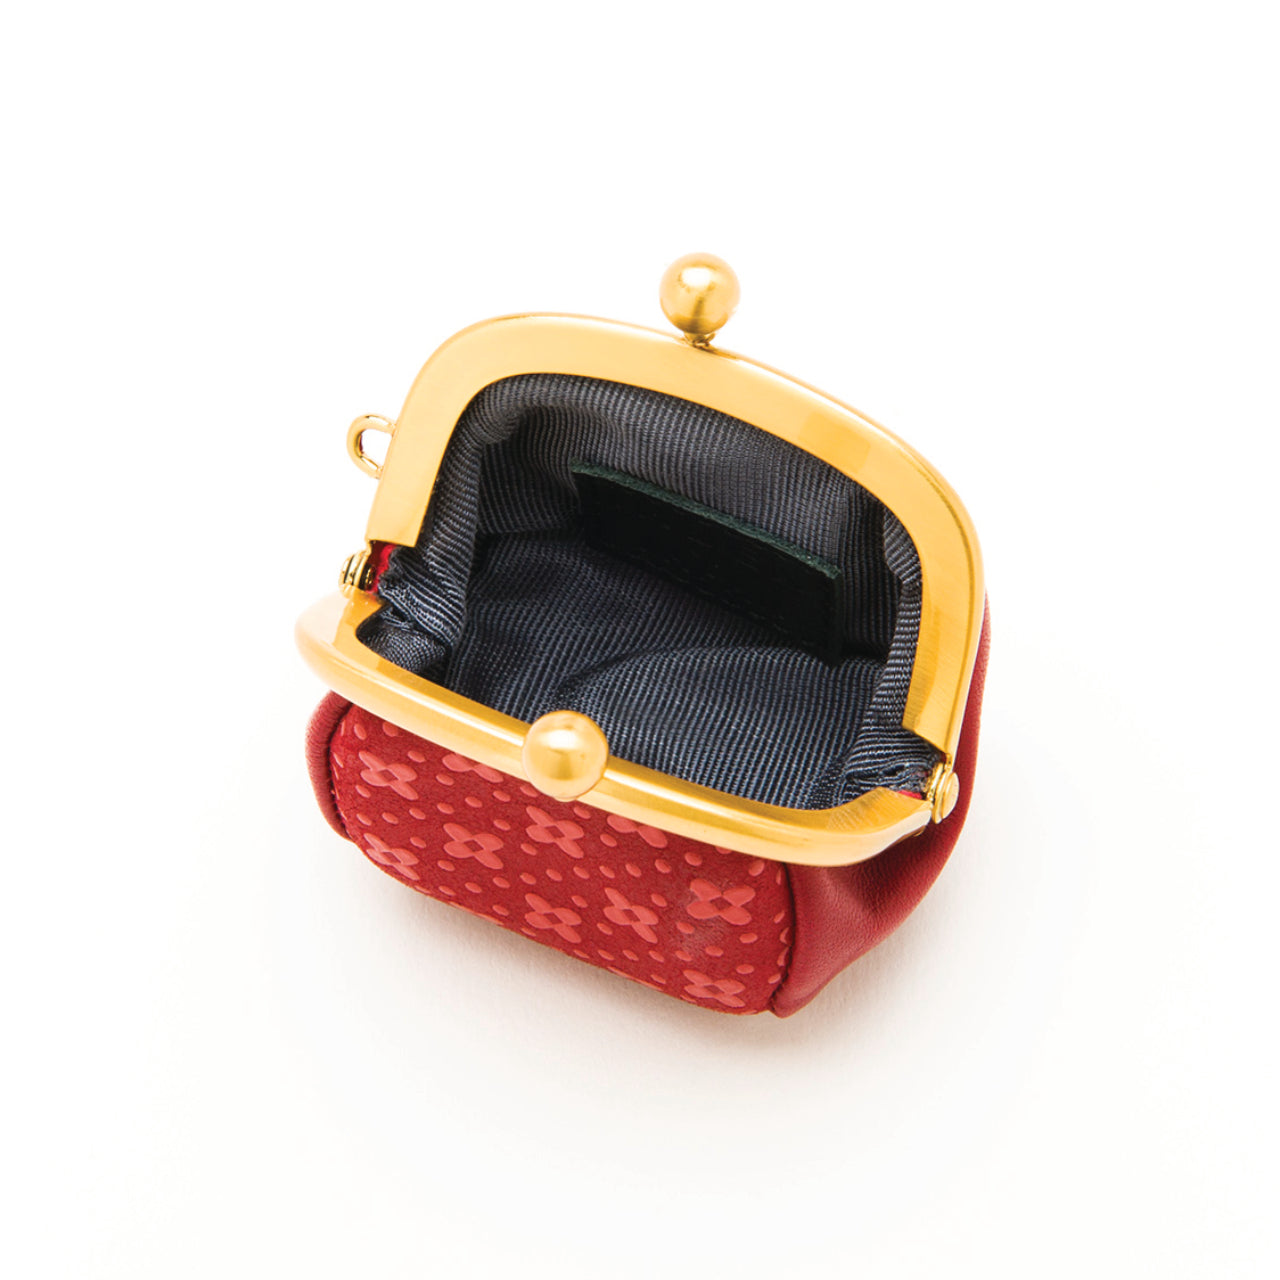 INDEN RING / COIN CASE R x R Flower Lattice